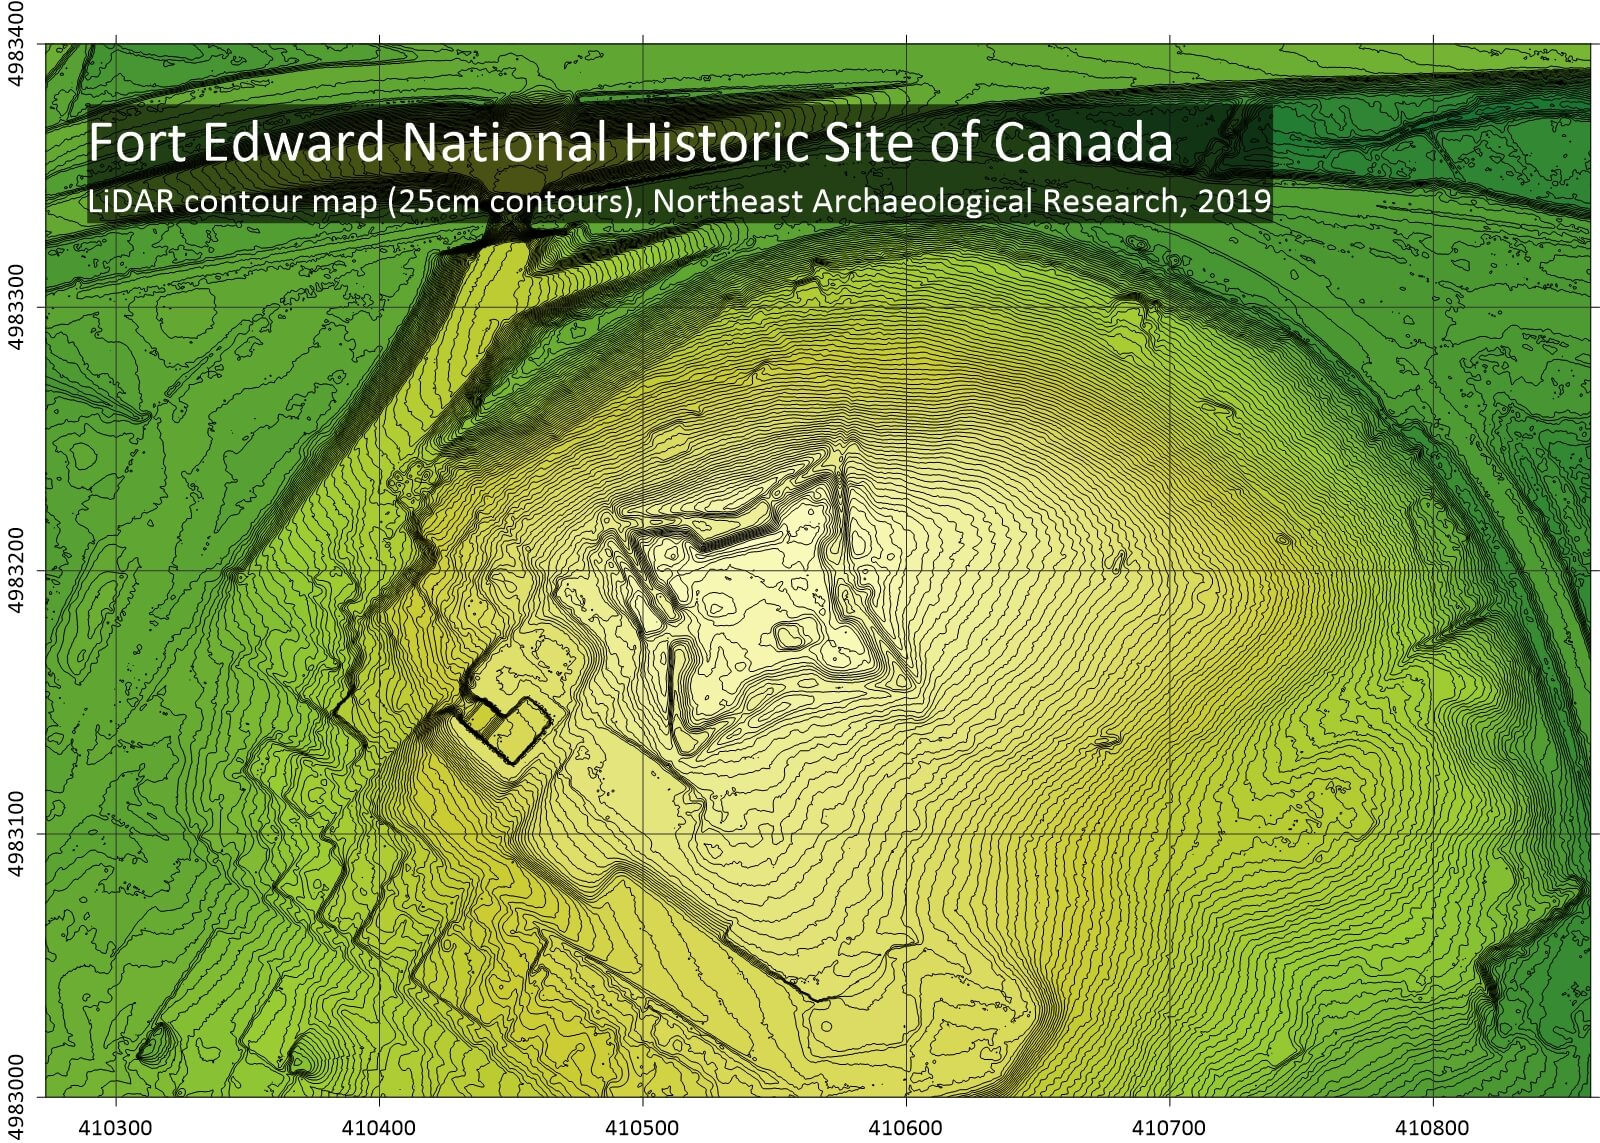 LiDAR Sheds Light on Architecture of 18th Century British Fort